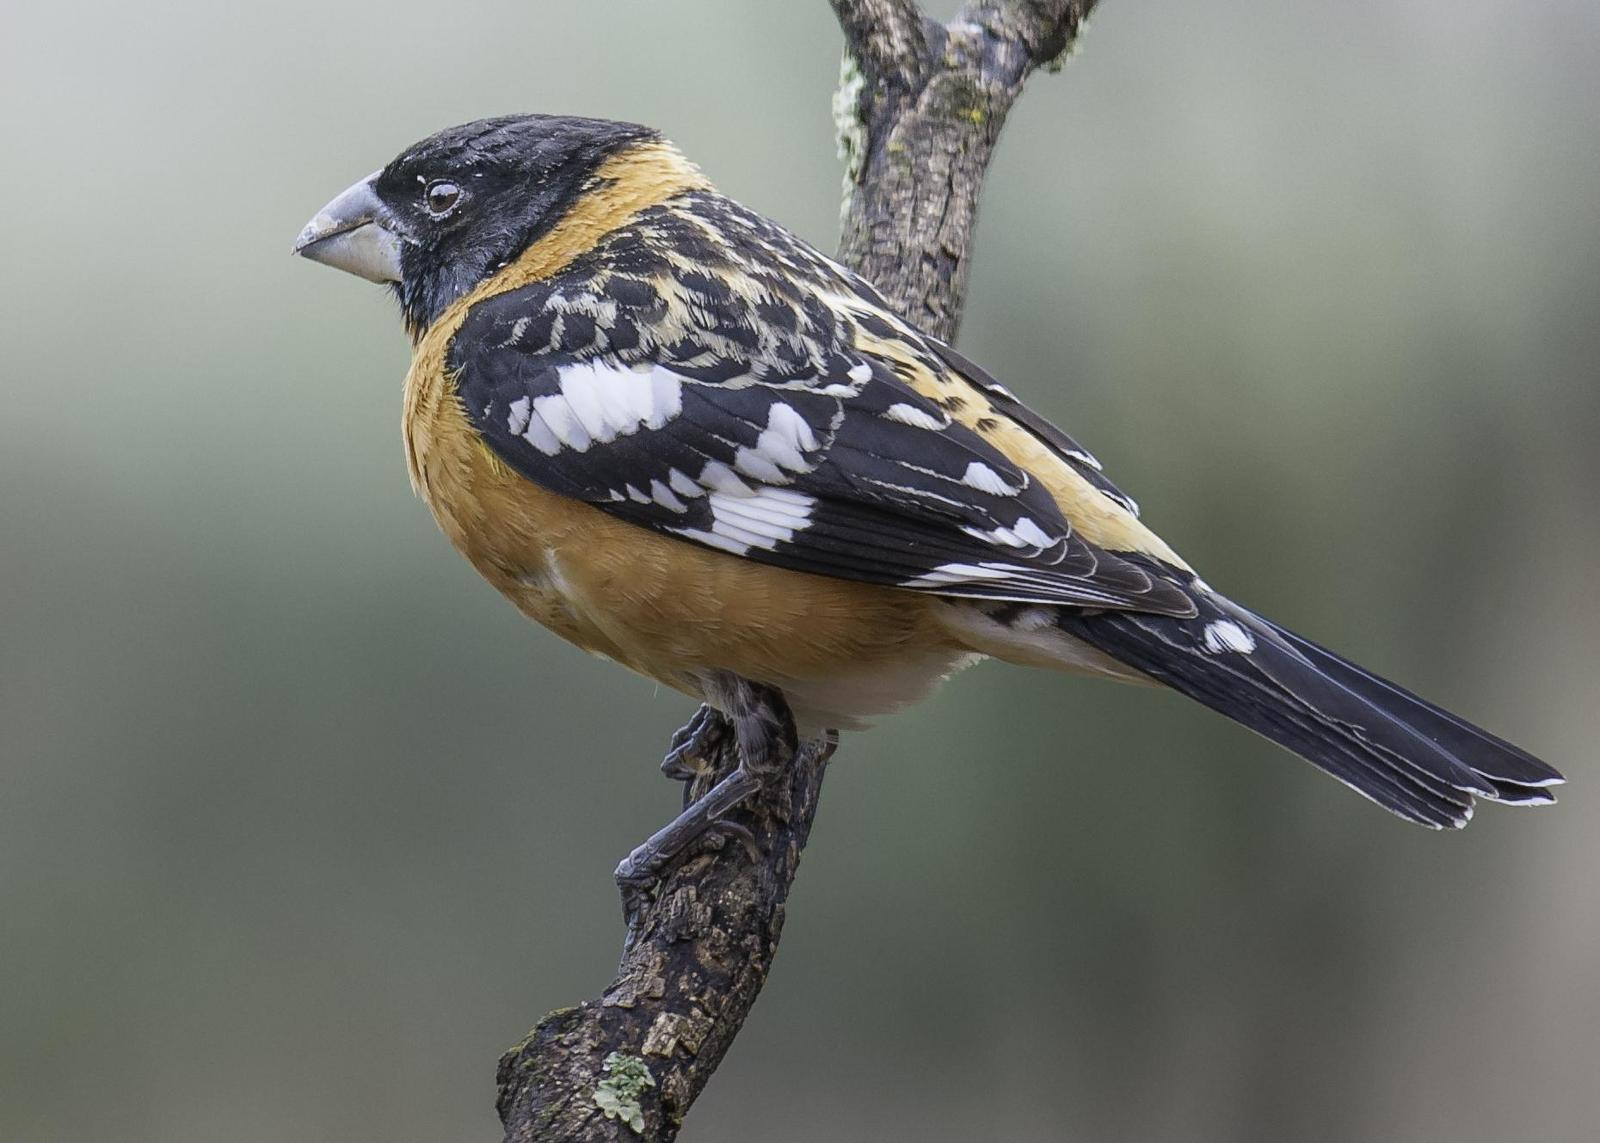 Black-headed Grosbeak Photo by Mason Rose